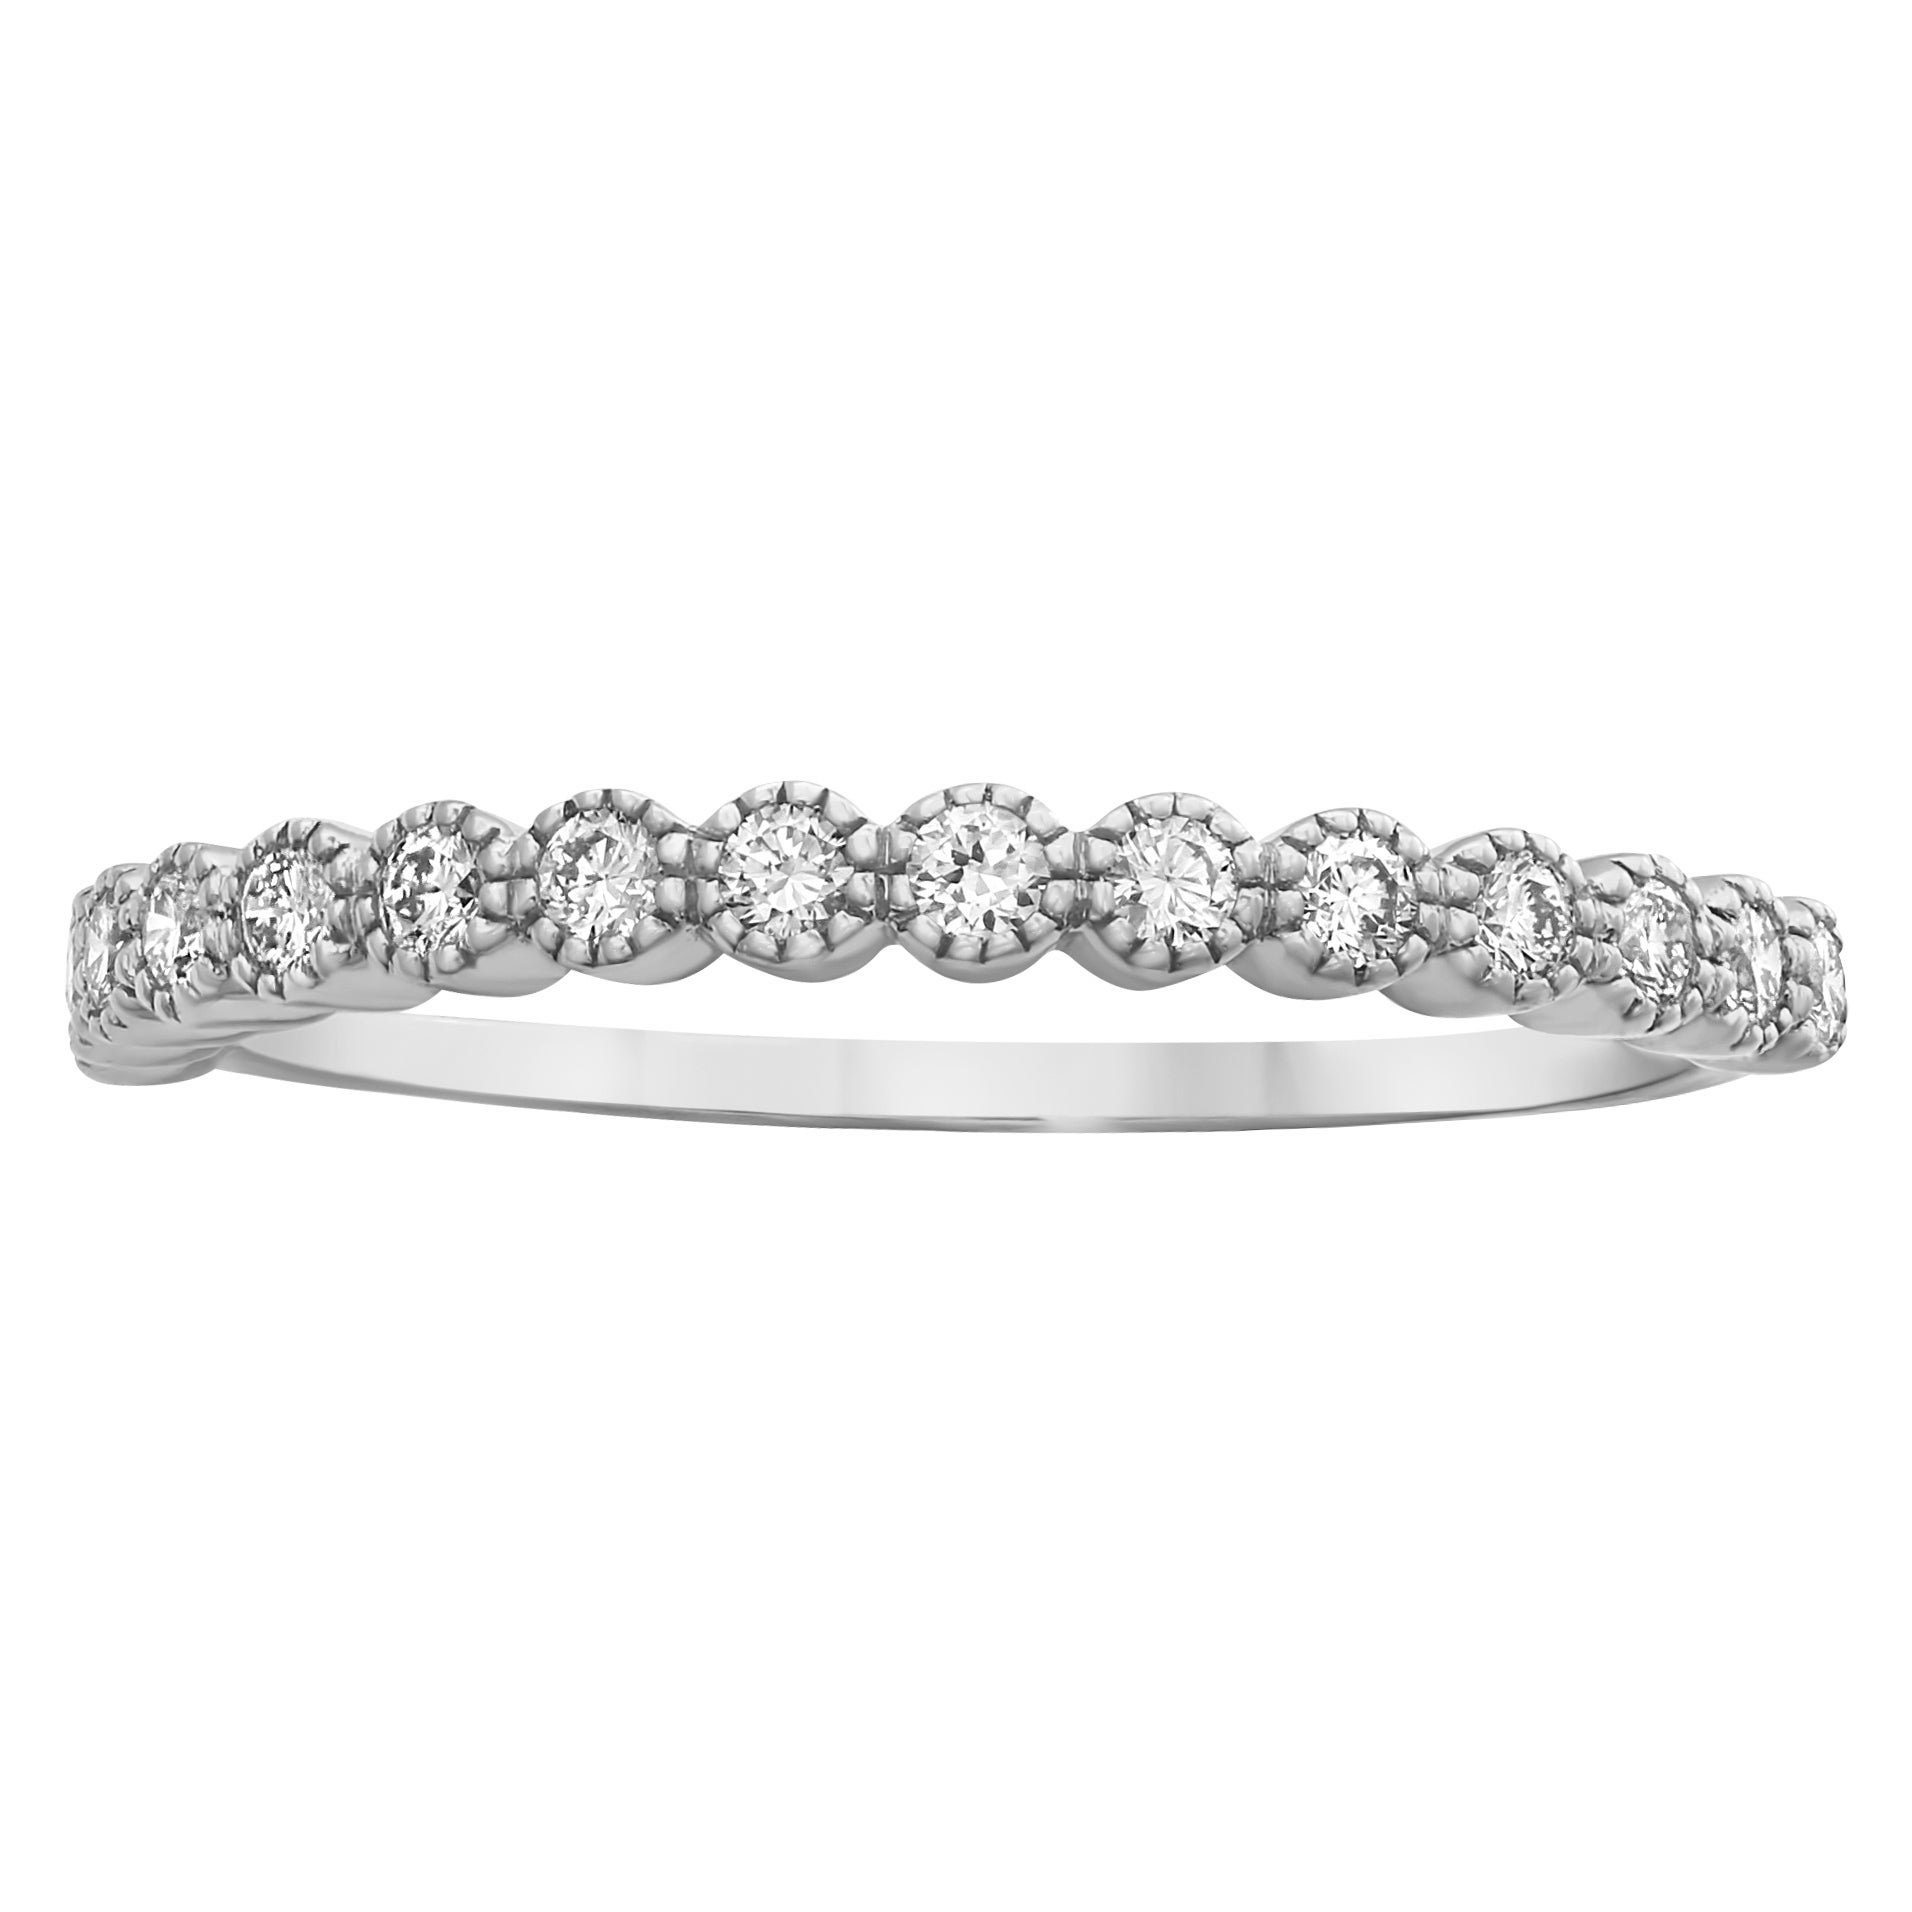 10k White Gold 1/4ct Tdw Diamond Vintage Inspired Anniversary Ring – White H I Intended For Latest Diamond Art Deco Inspired Anniversary Bands In White Gold (View 16 of 25)